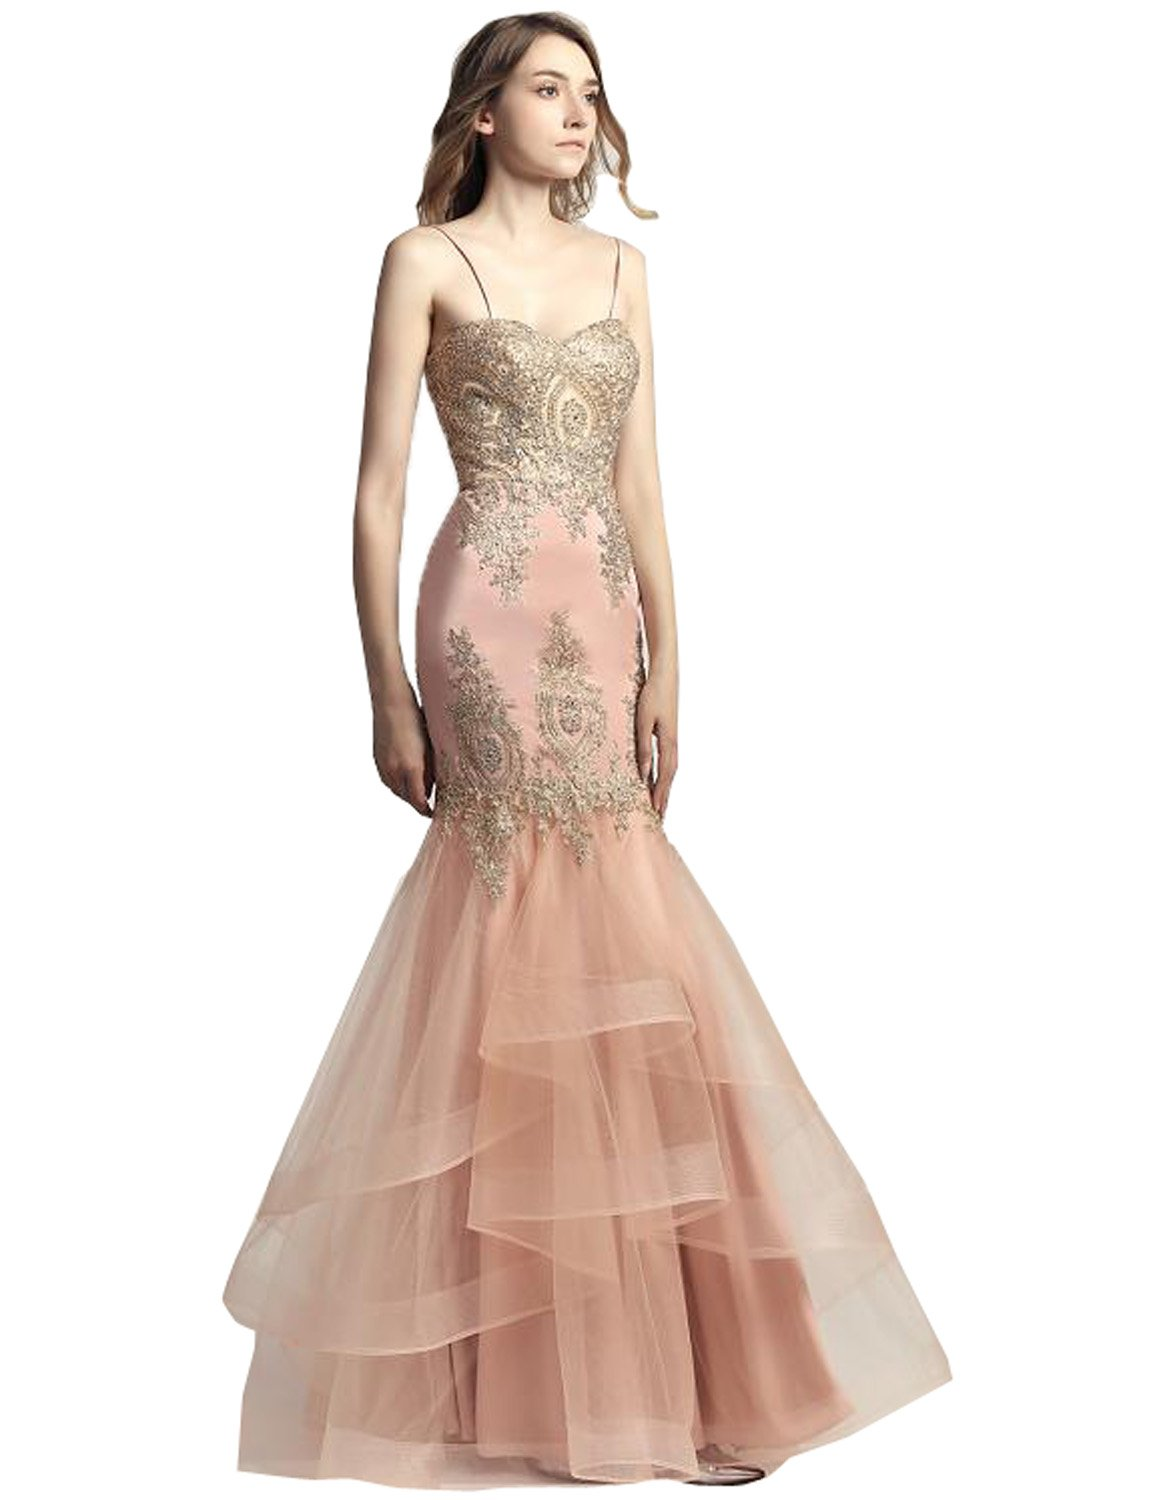 Belle House Women's Blush Long Prom Dresses 2018 For Women Sexy Evening Dress Ball Gown With Gold Lace Applique